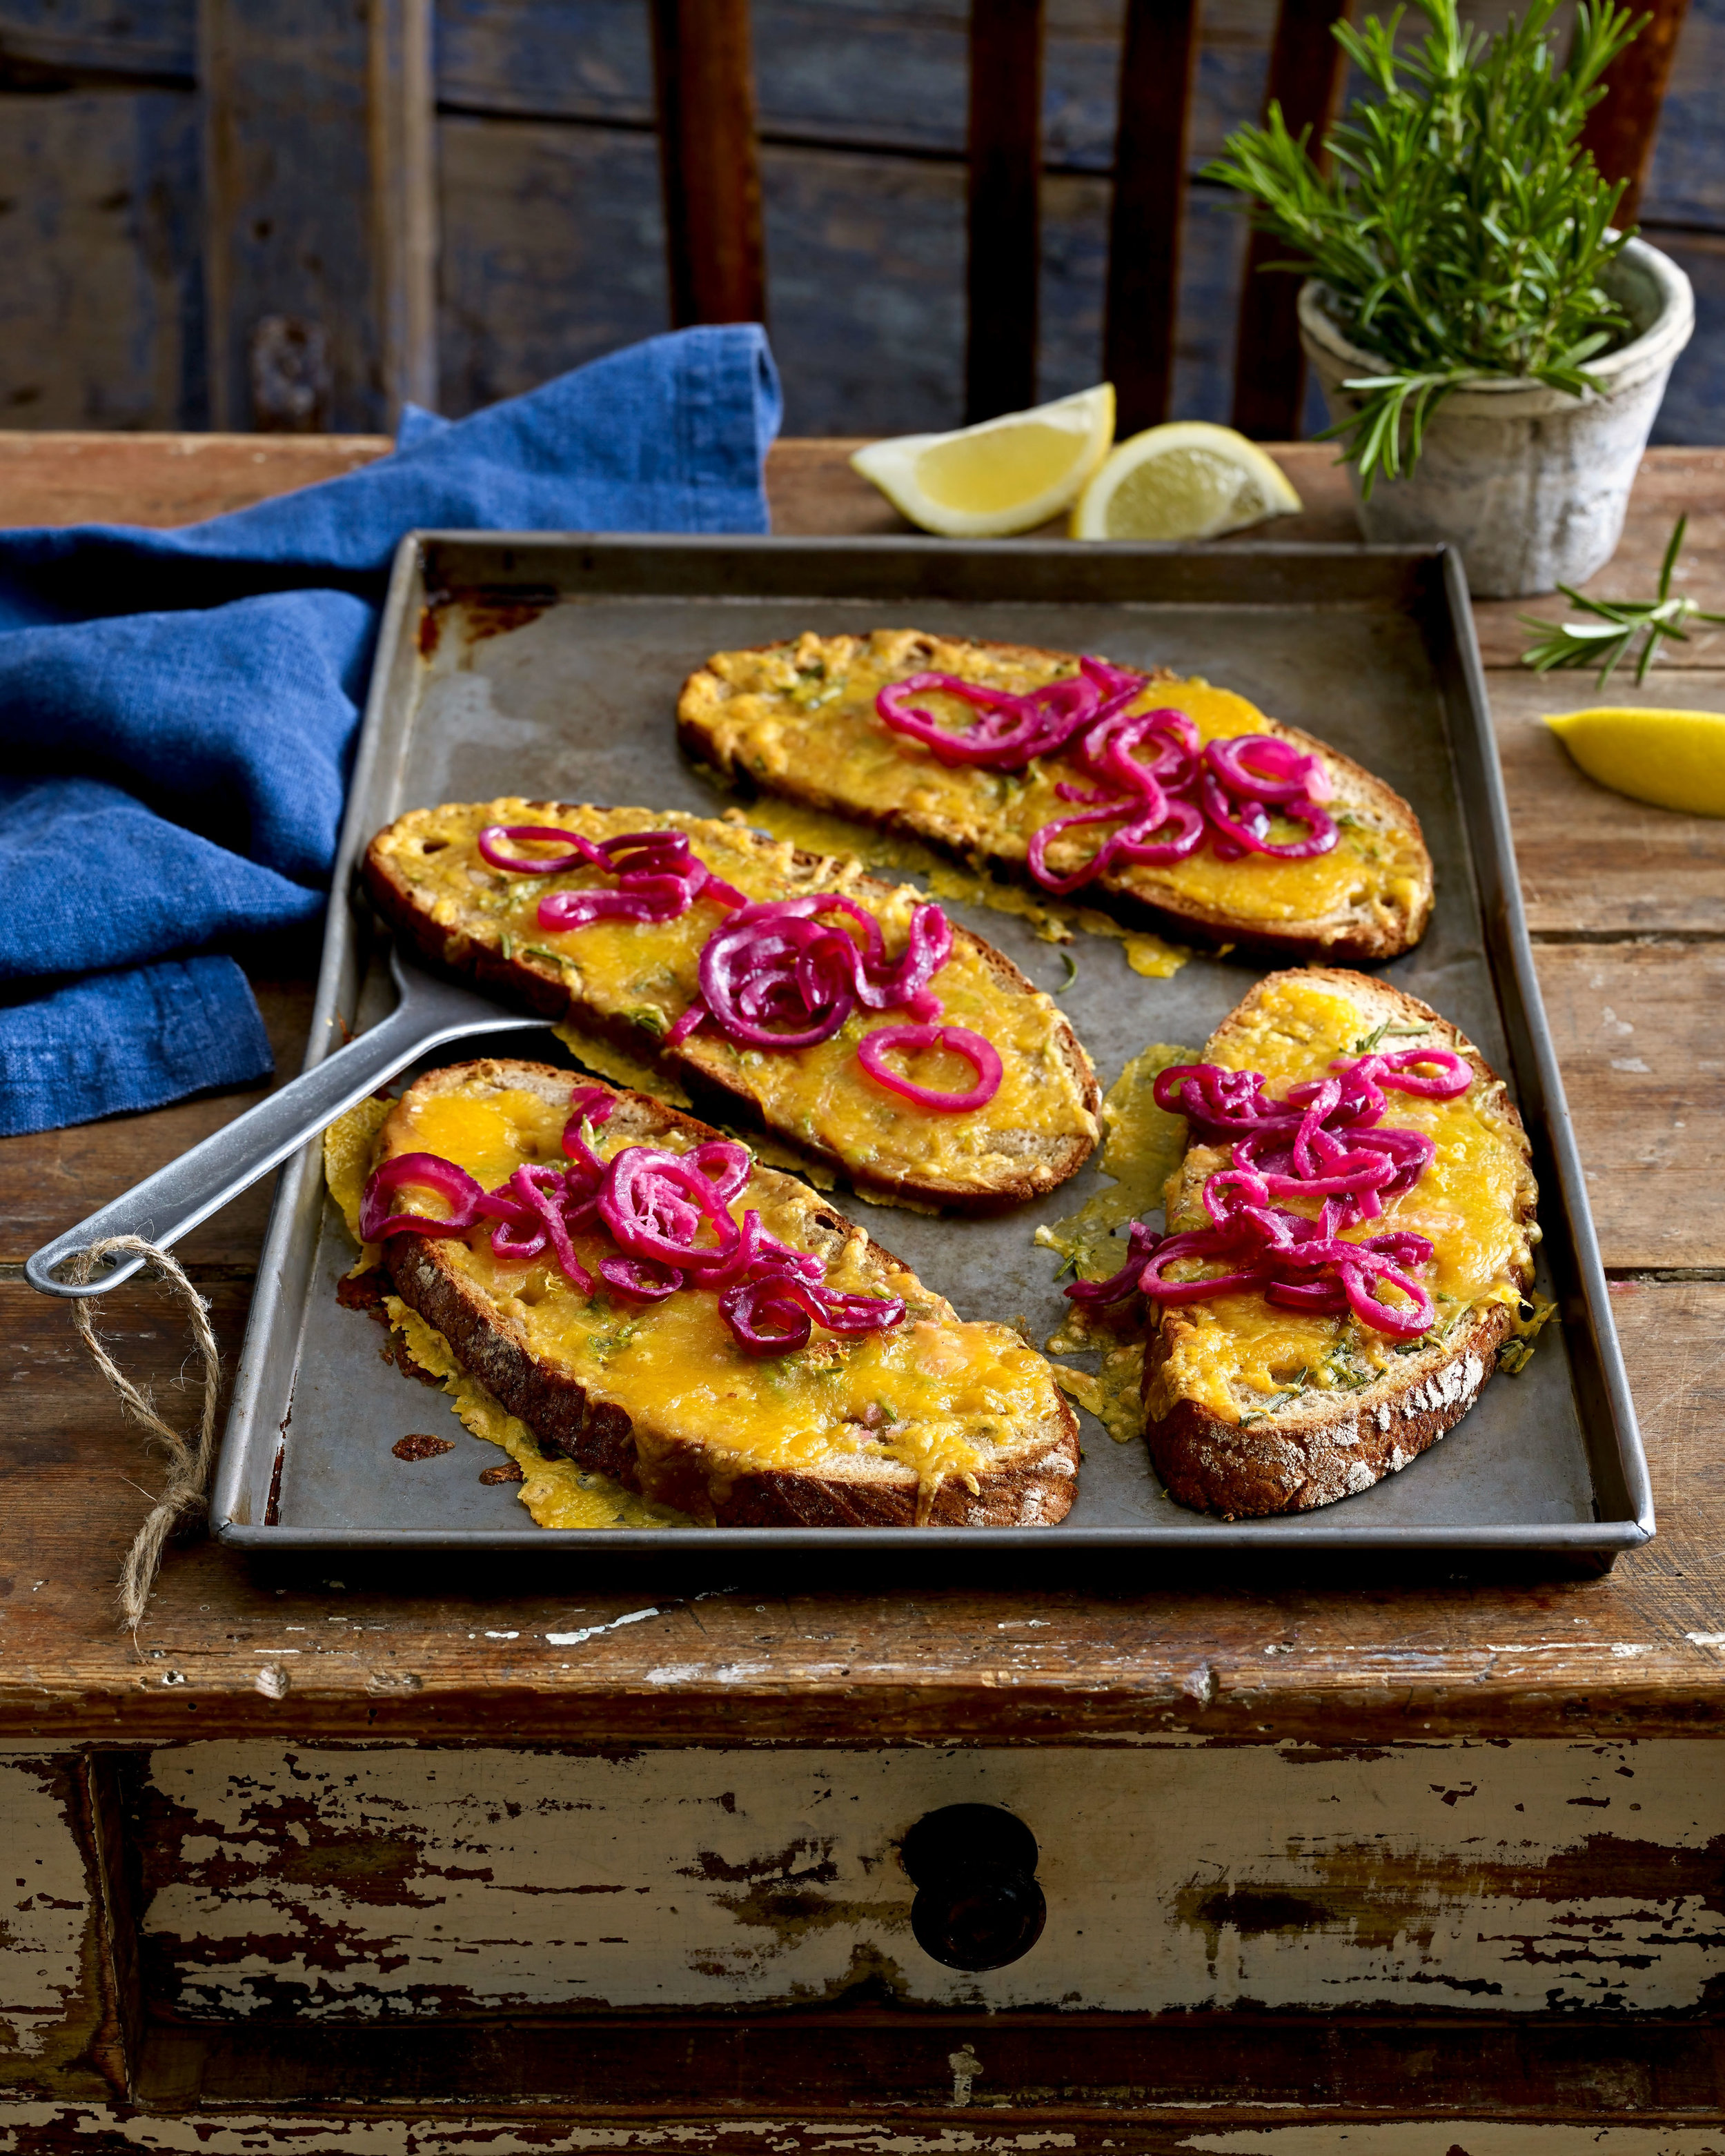 Crumbly Lancashire cheese topped with sweet and tangy red onions. A quick and tasty lunch pairing on toast. From a recipe in the September 2018 issue of Land Scape .